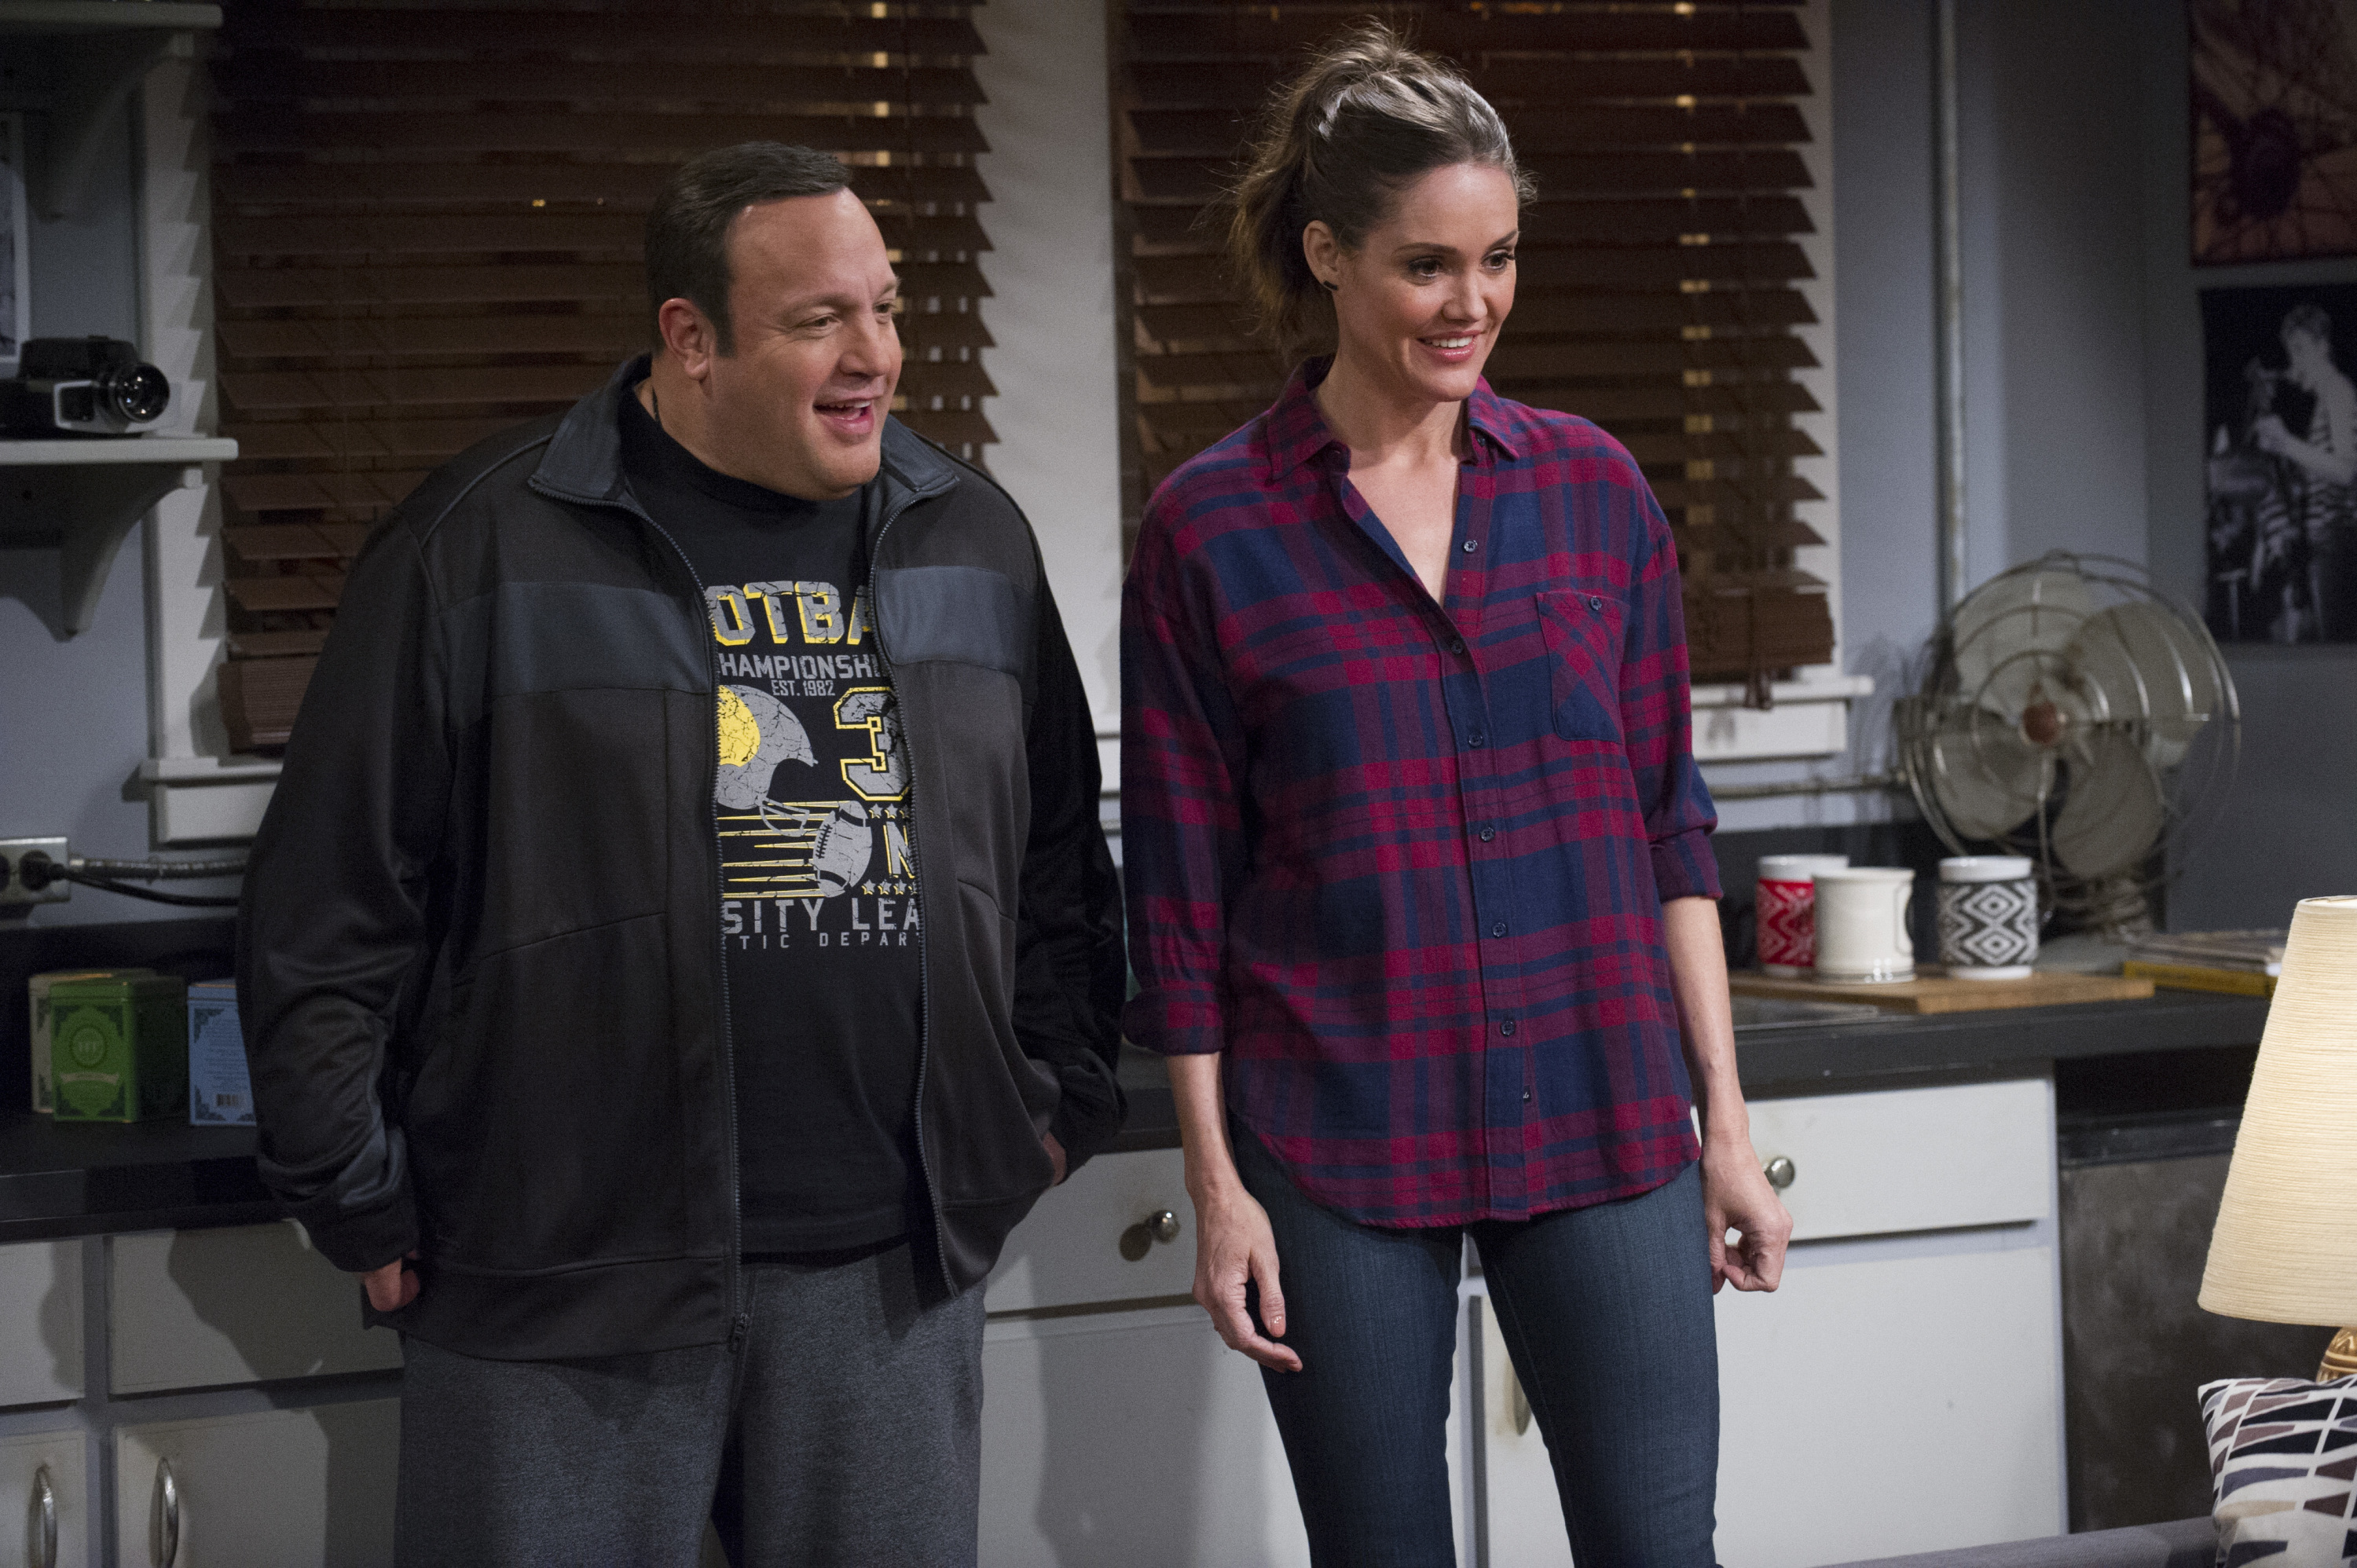 Kevin James Explains Tv Wife S Onscreen Death Eric andre hosts the most chaotic, unorthodox and surreal comedy chat show around. kevin james explains tv wife s onscreen